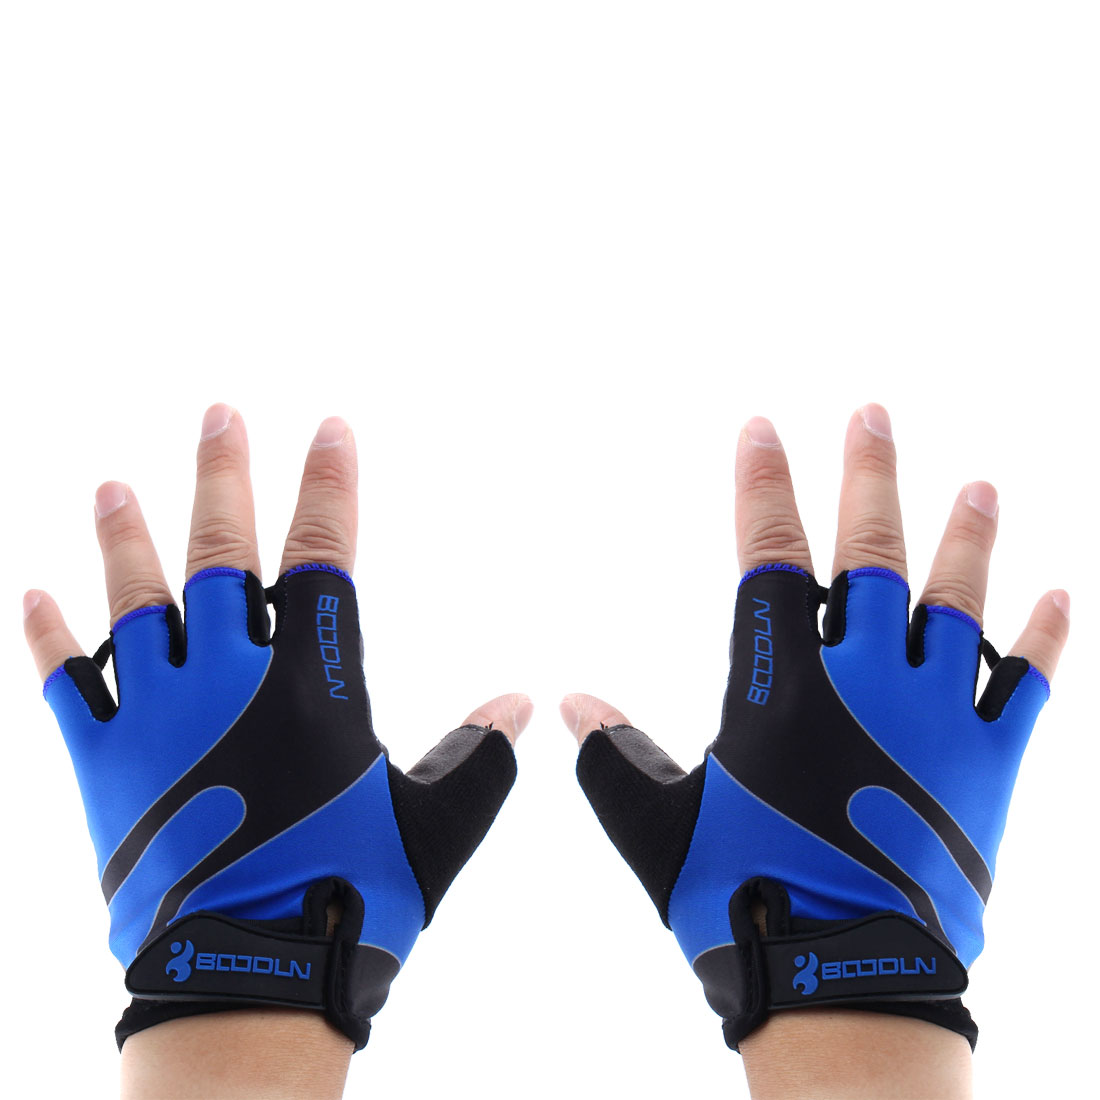 BOODUN Authorized Polyester Exercise Sports Lifting Training Bodybuilding Wrist Protector Half Finger Fitness Gloves Blue M Pair